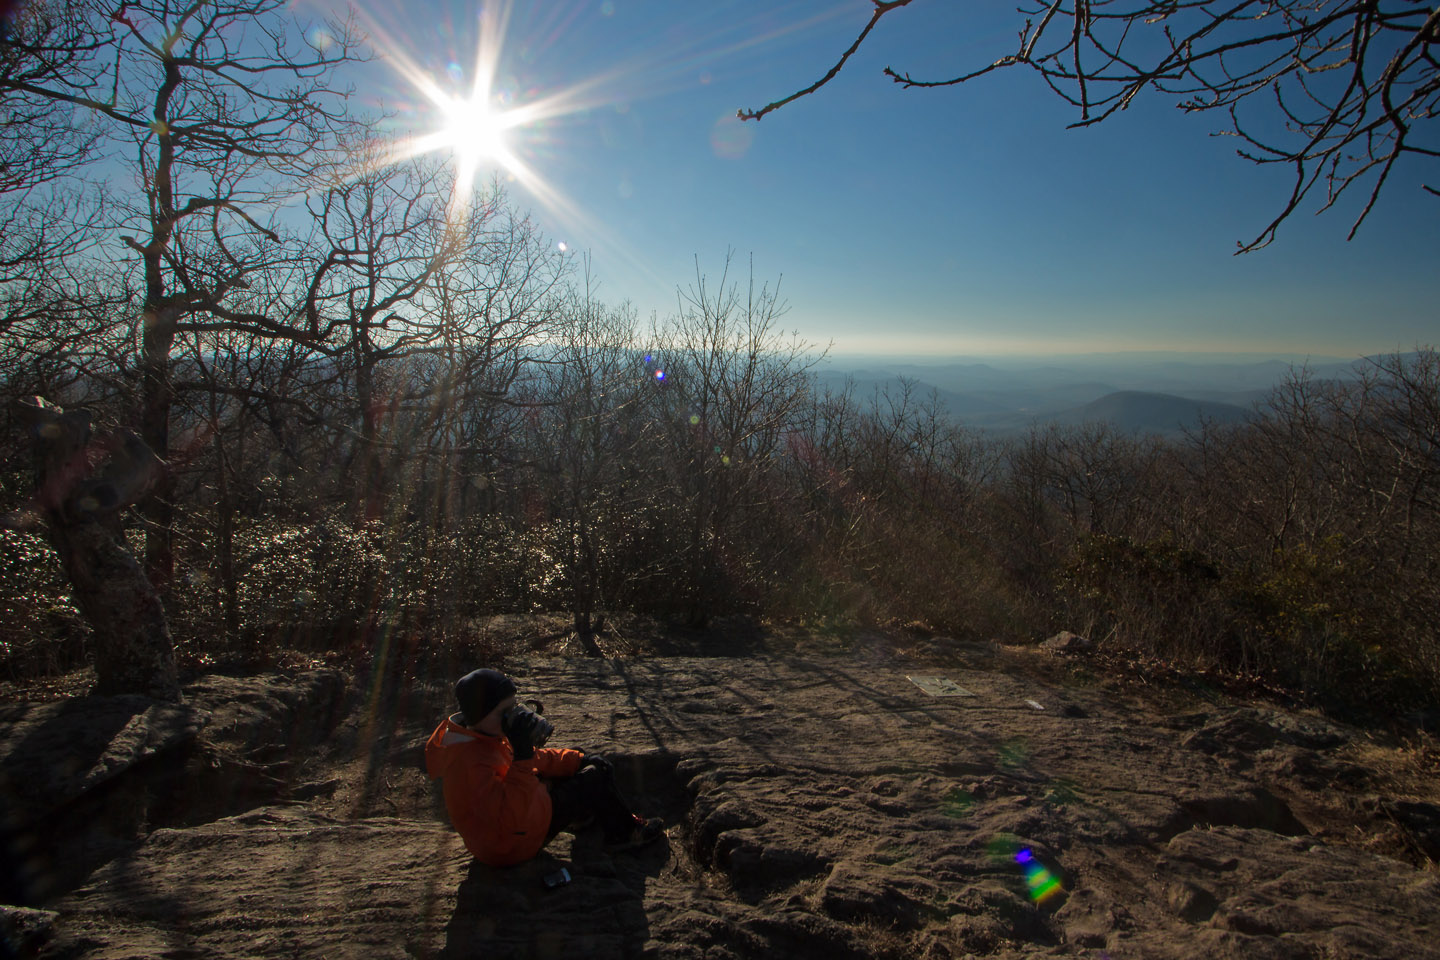 The Appalachian Trail begins, or ends, depending upon one's point of view, at Springer Mountain in northwest Georgia. - Tom Stone via Flickr